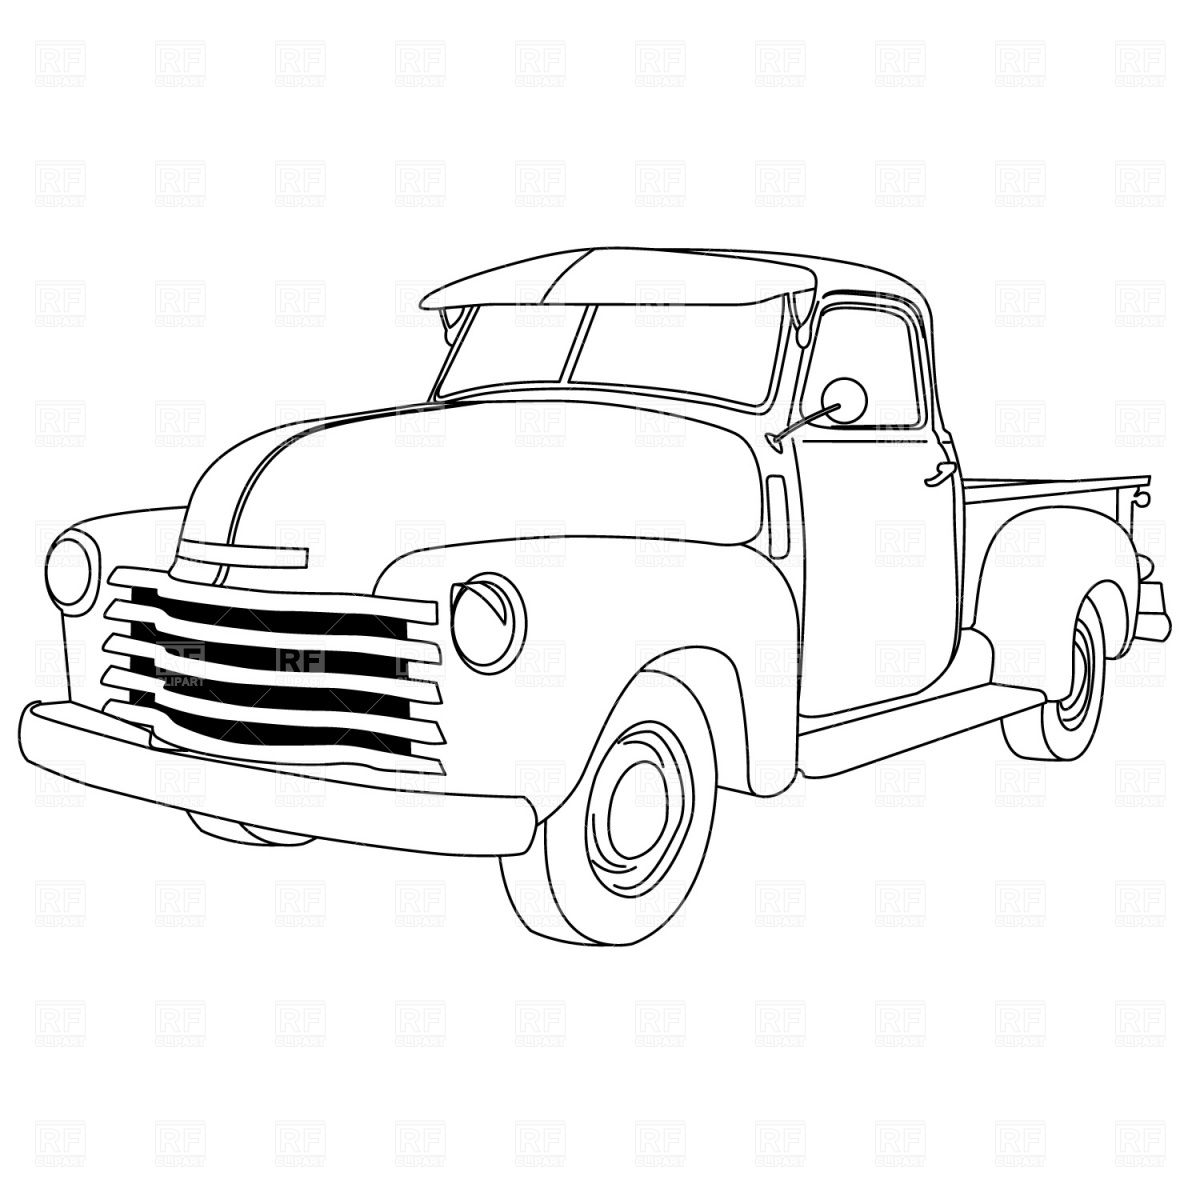 Vintage pickup truck bed black and white clipart banner black and white library Classic Car Vector Art Old american pick-up truck | Retro any Hot ... banner black and white library